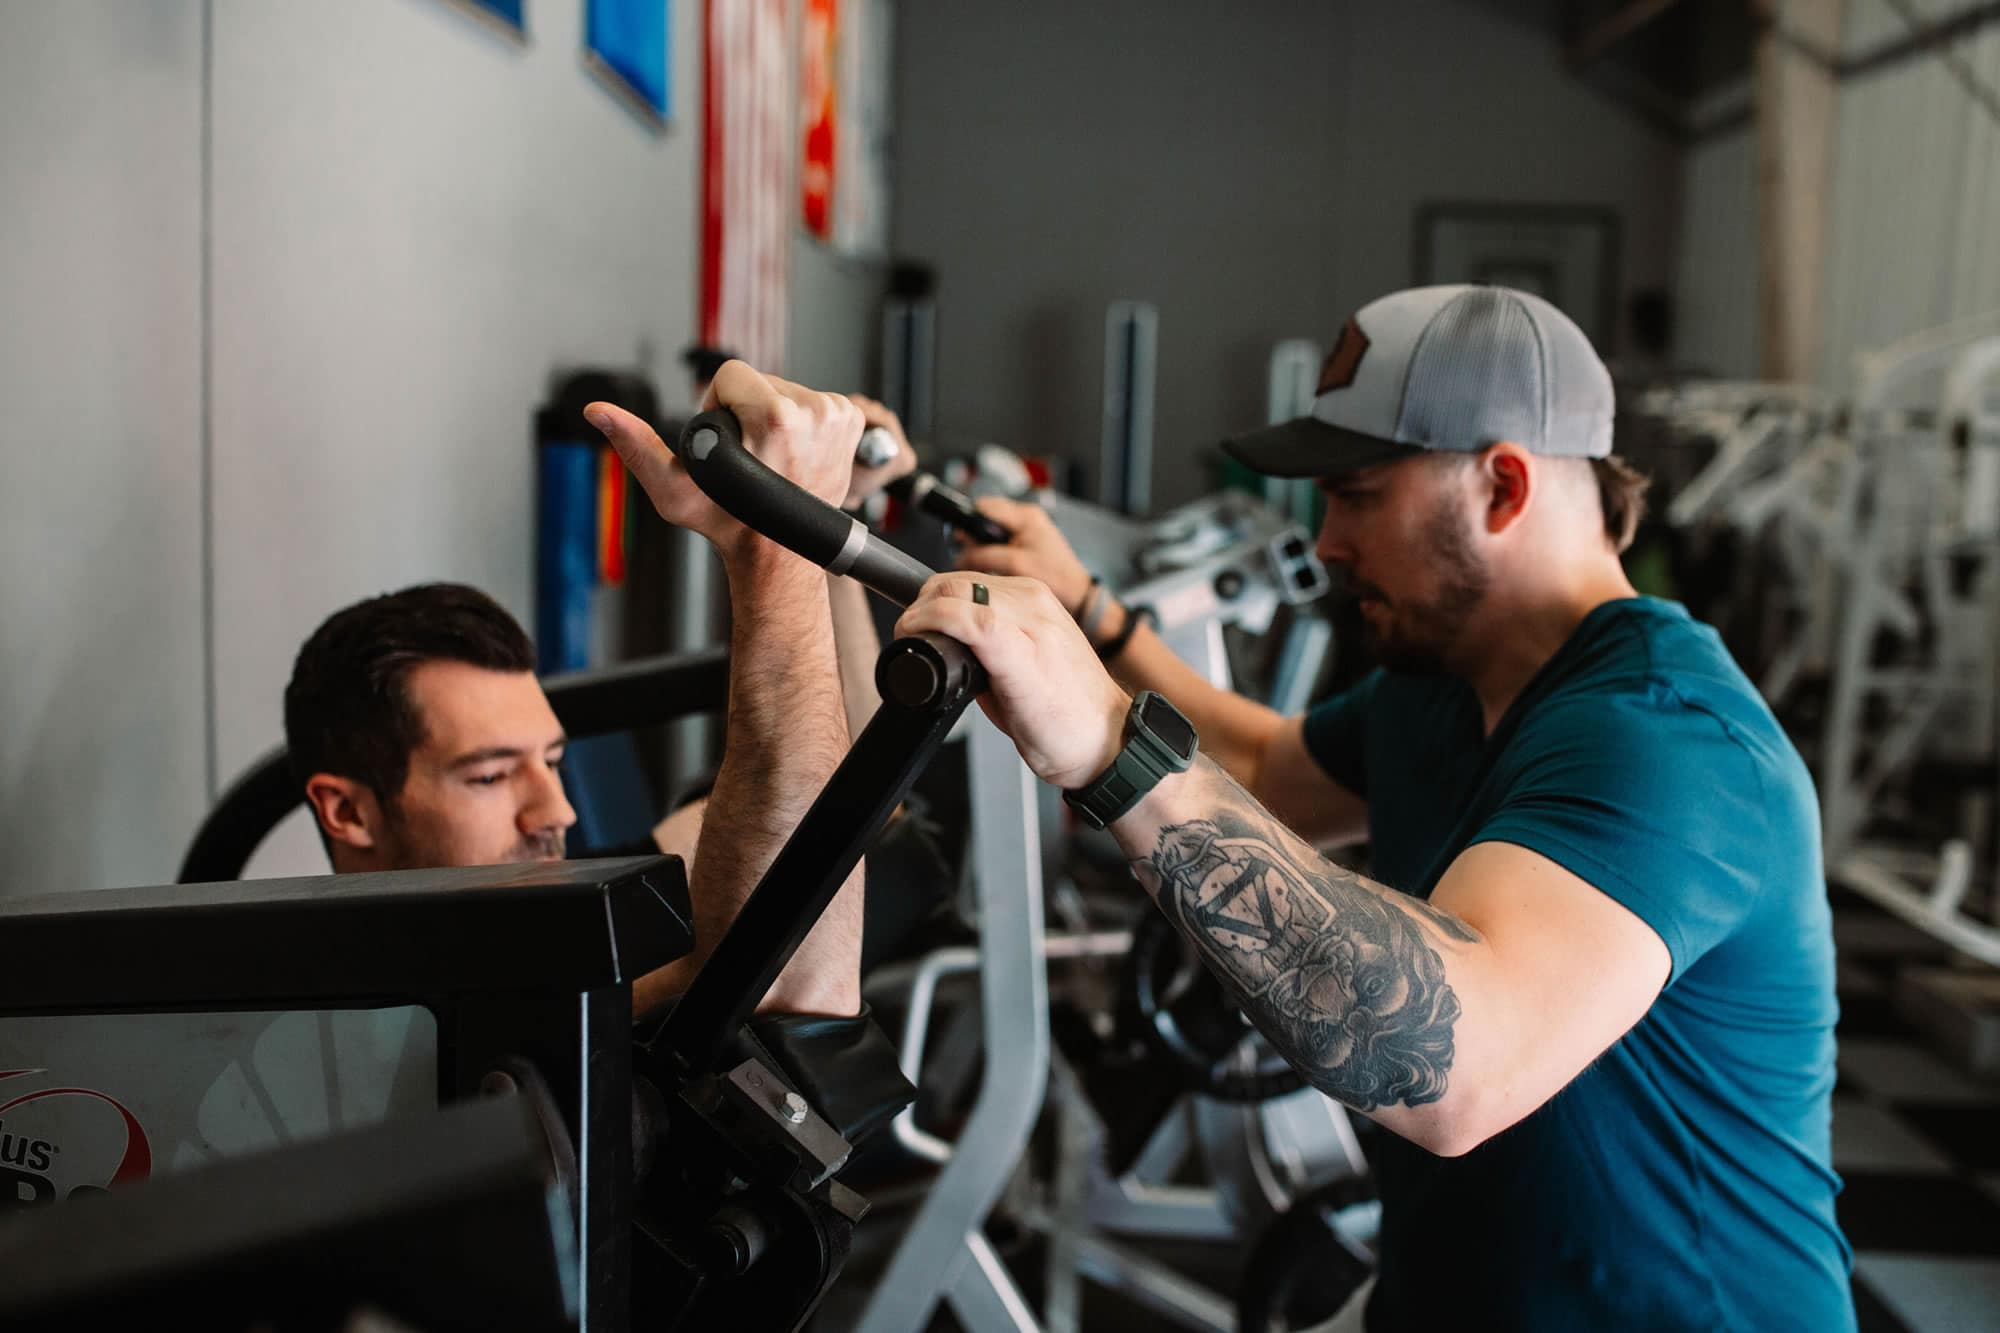 1 on 1 personal training in Minneapolis